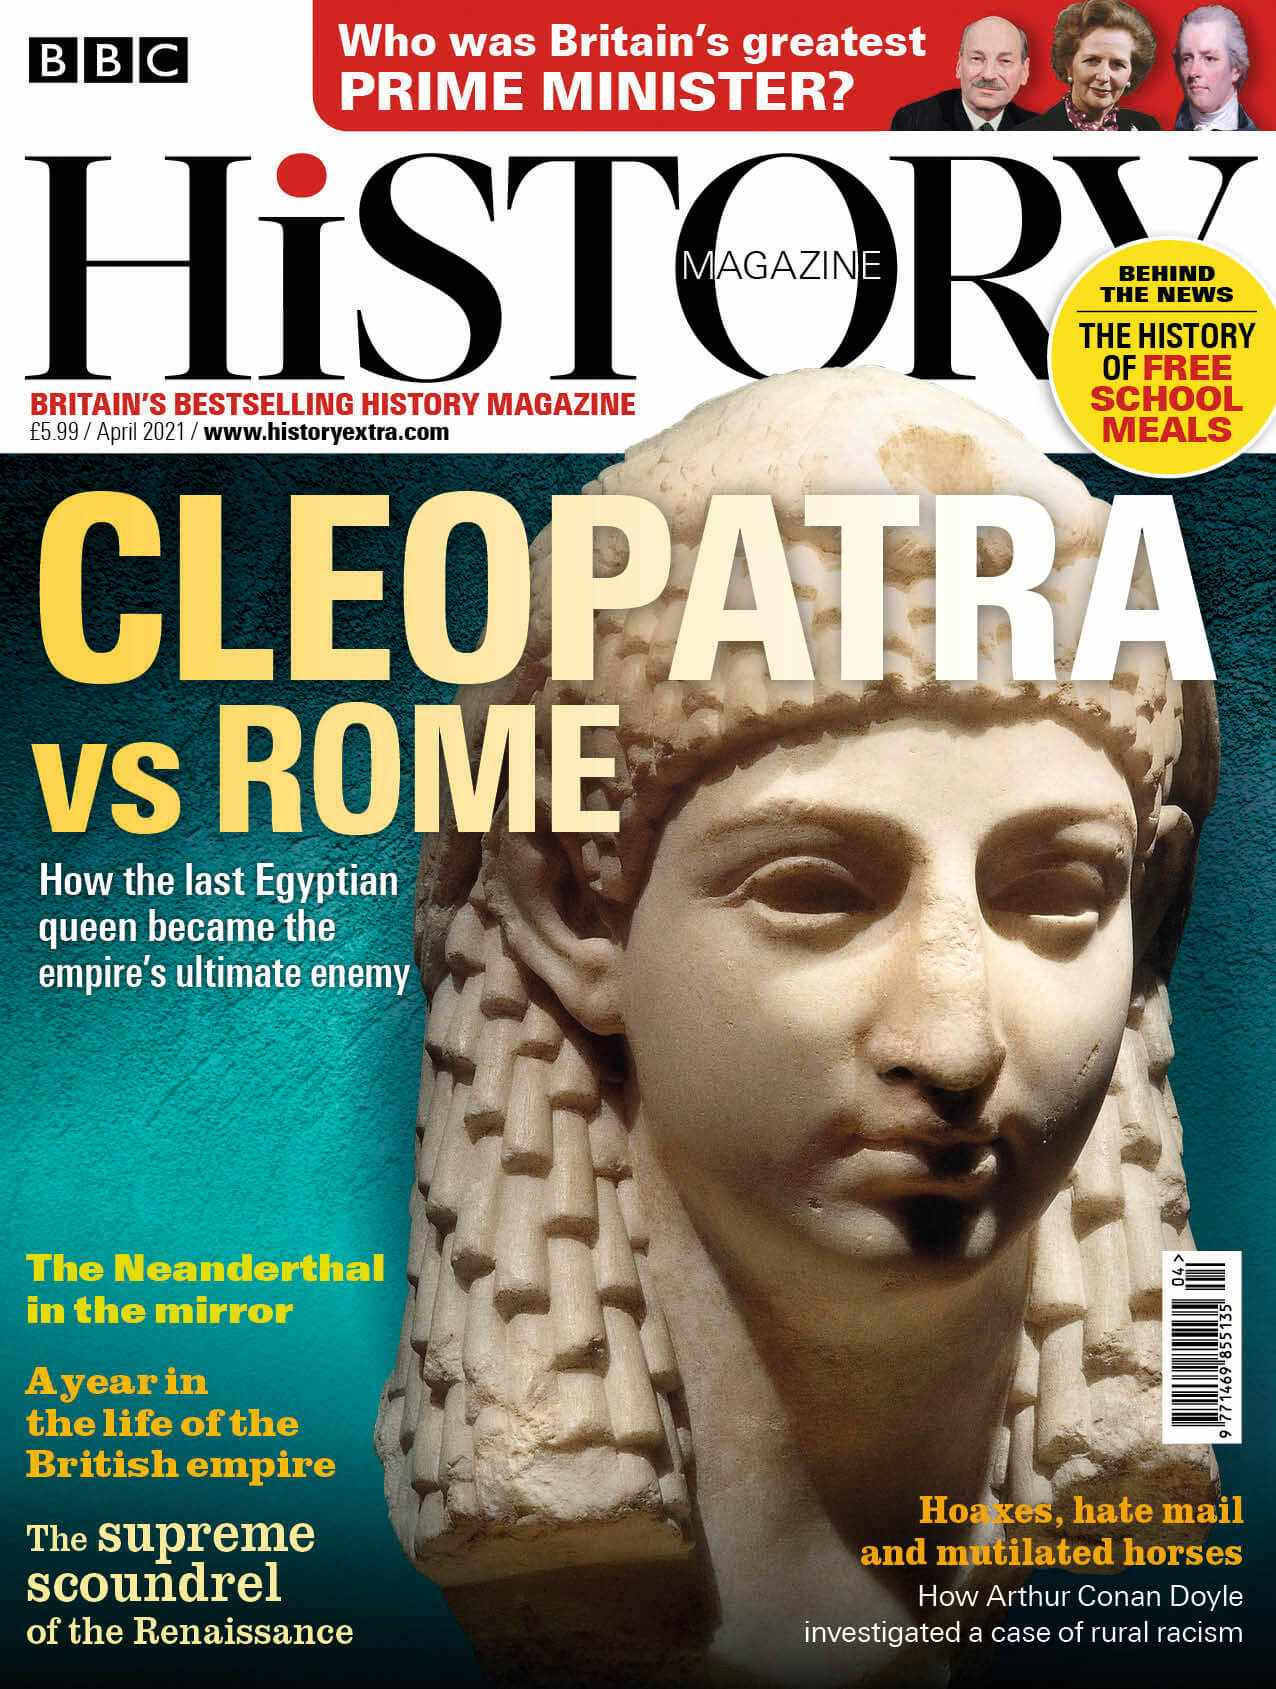 BBC History Magazine April 2021